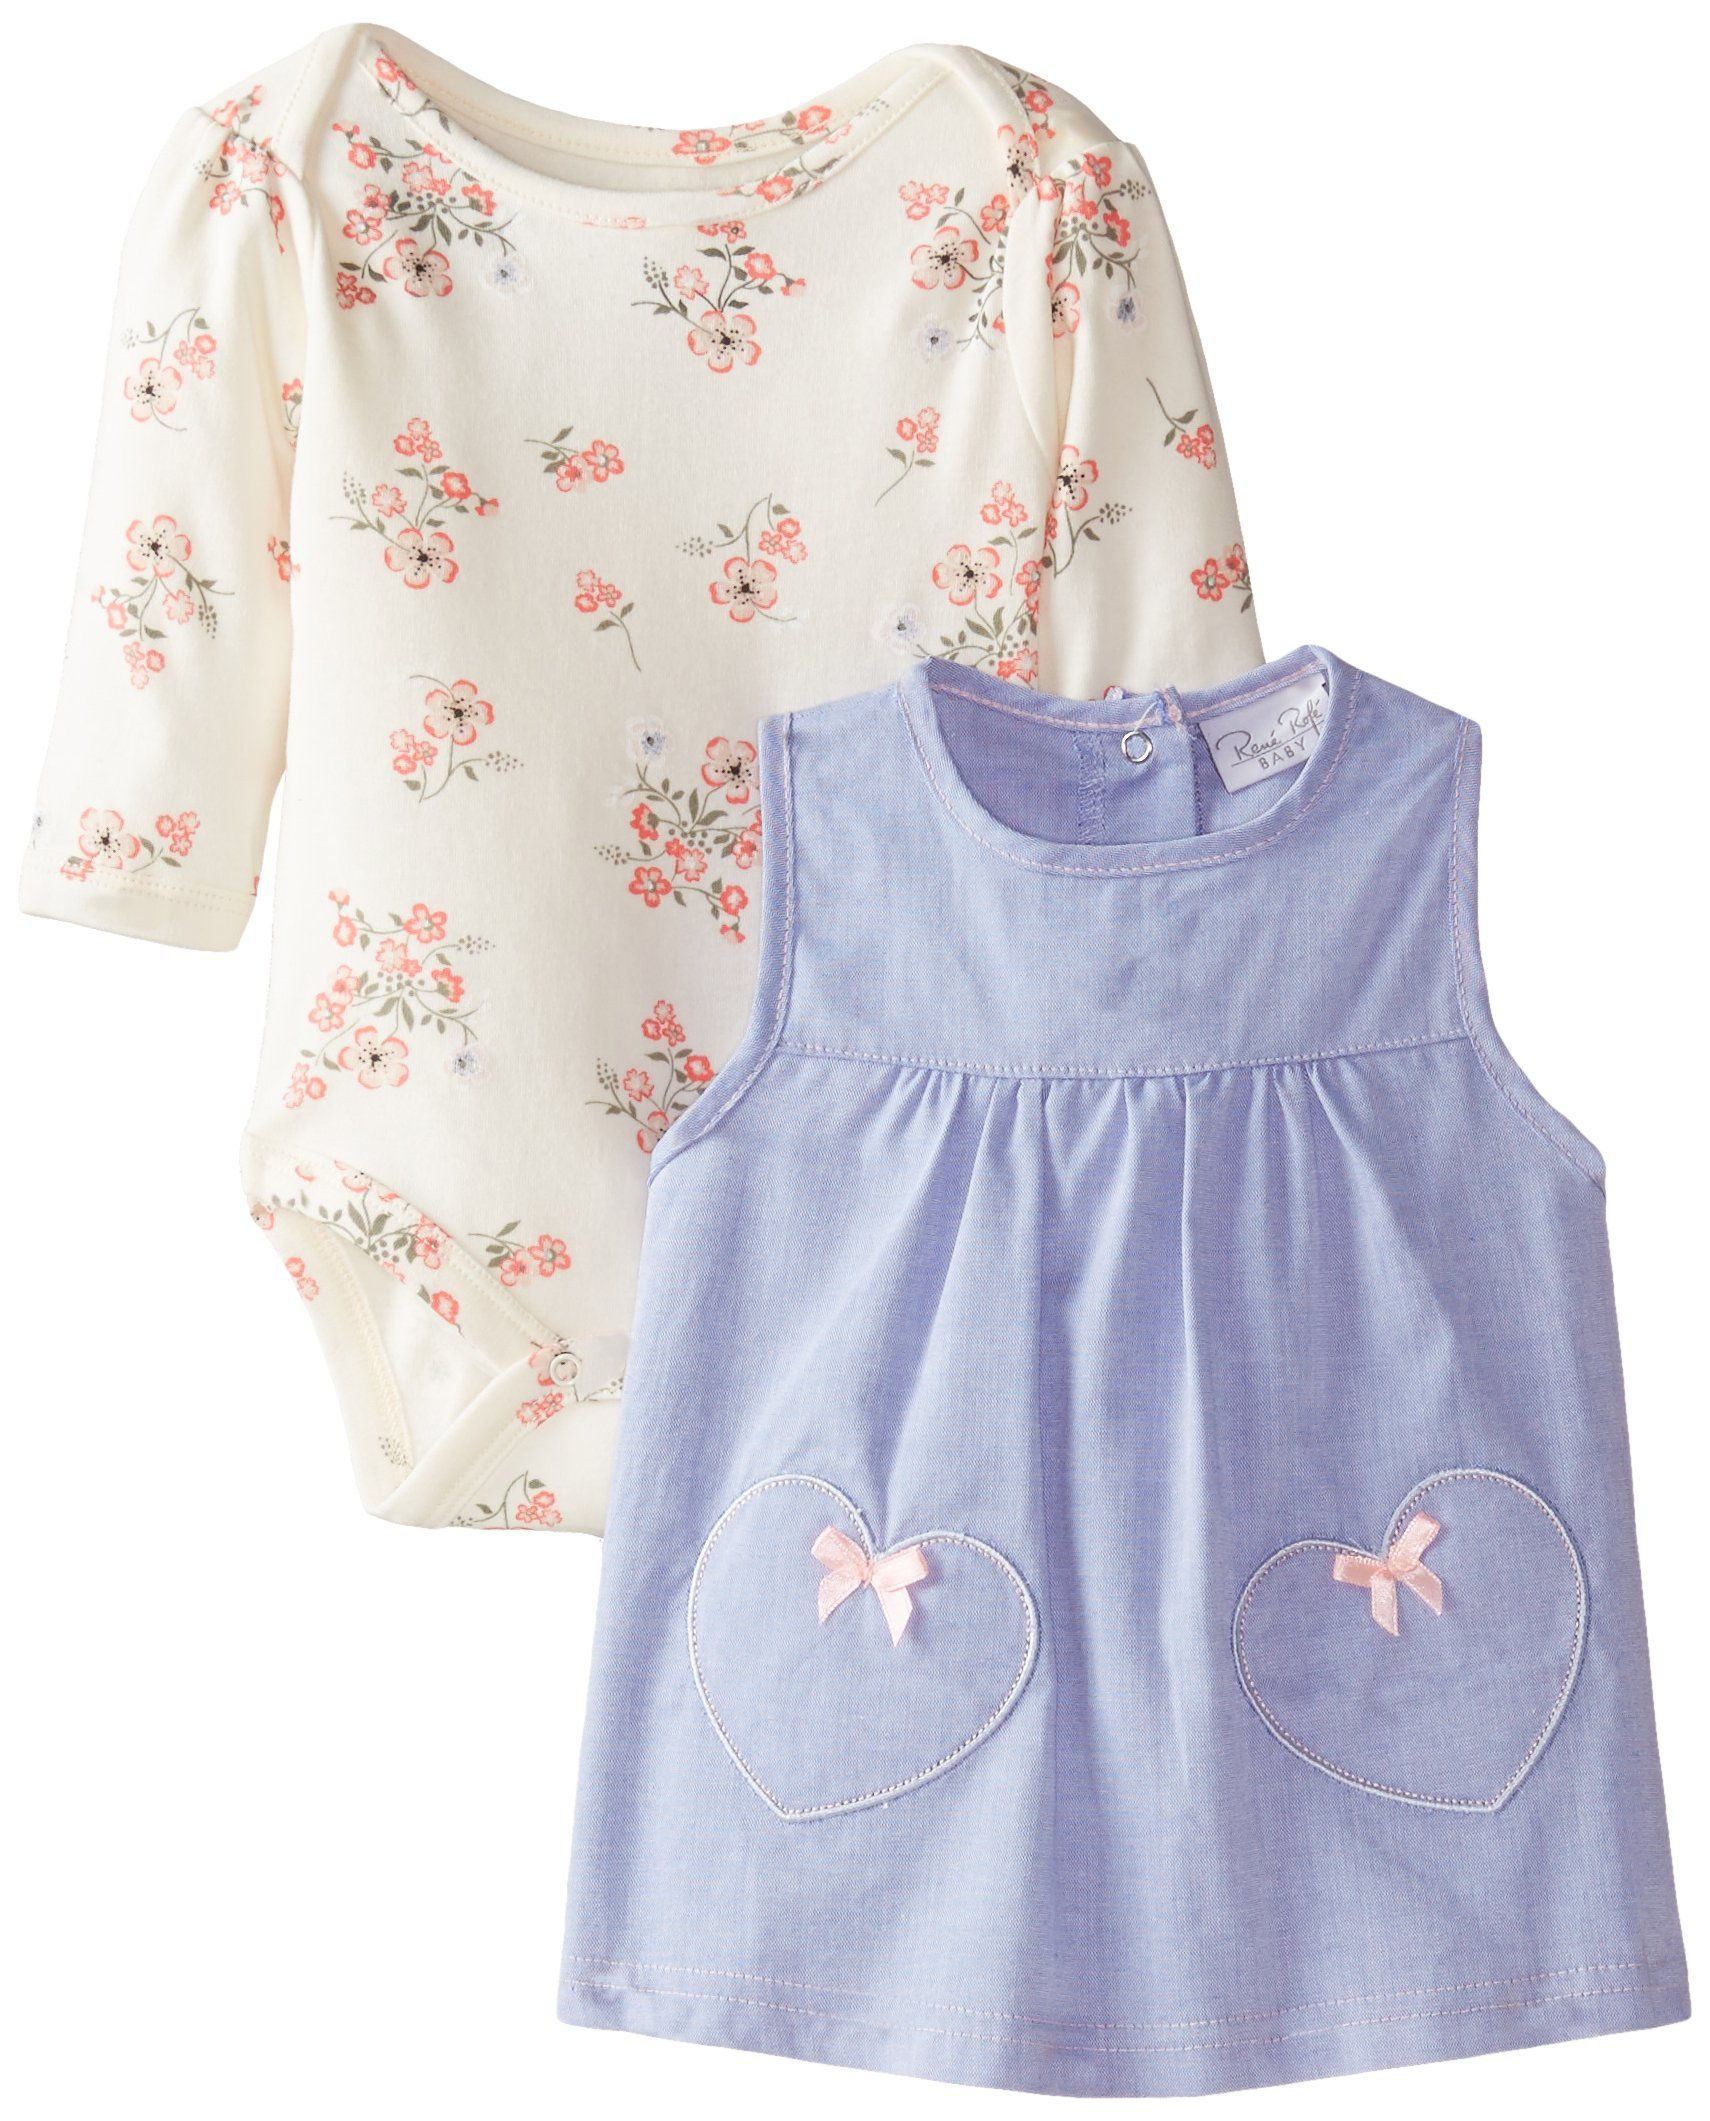 e8869d344ad2 Amazon  Rene Rofe Baby Baby-Girls Newborn Heart and Floral Chambray ...